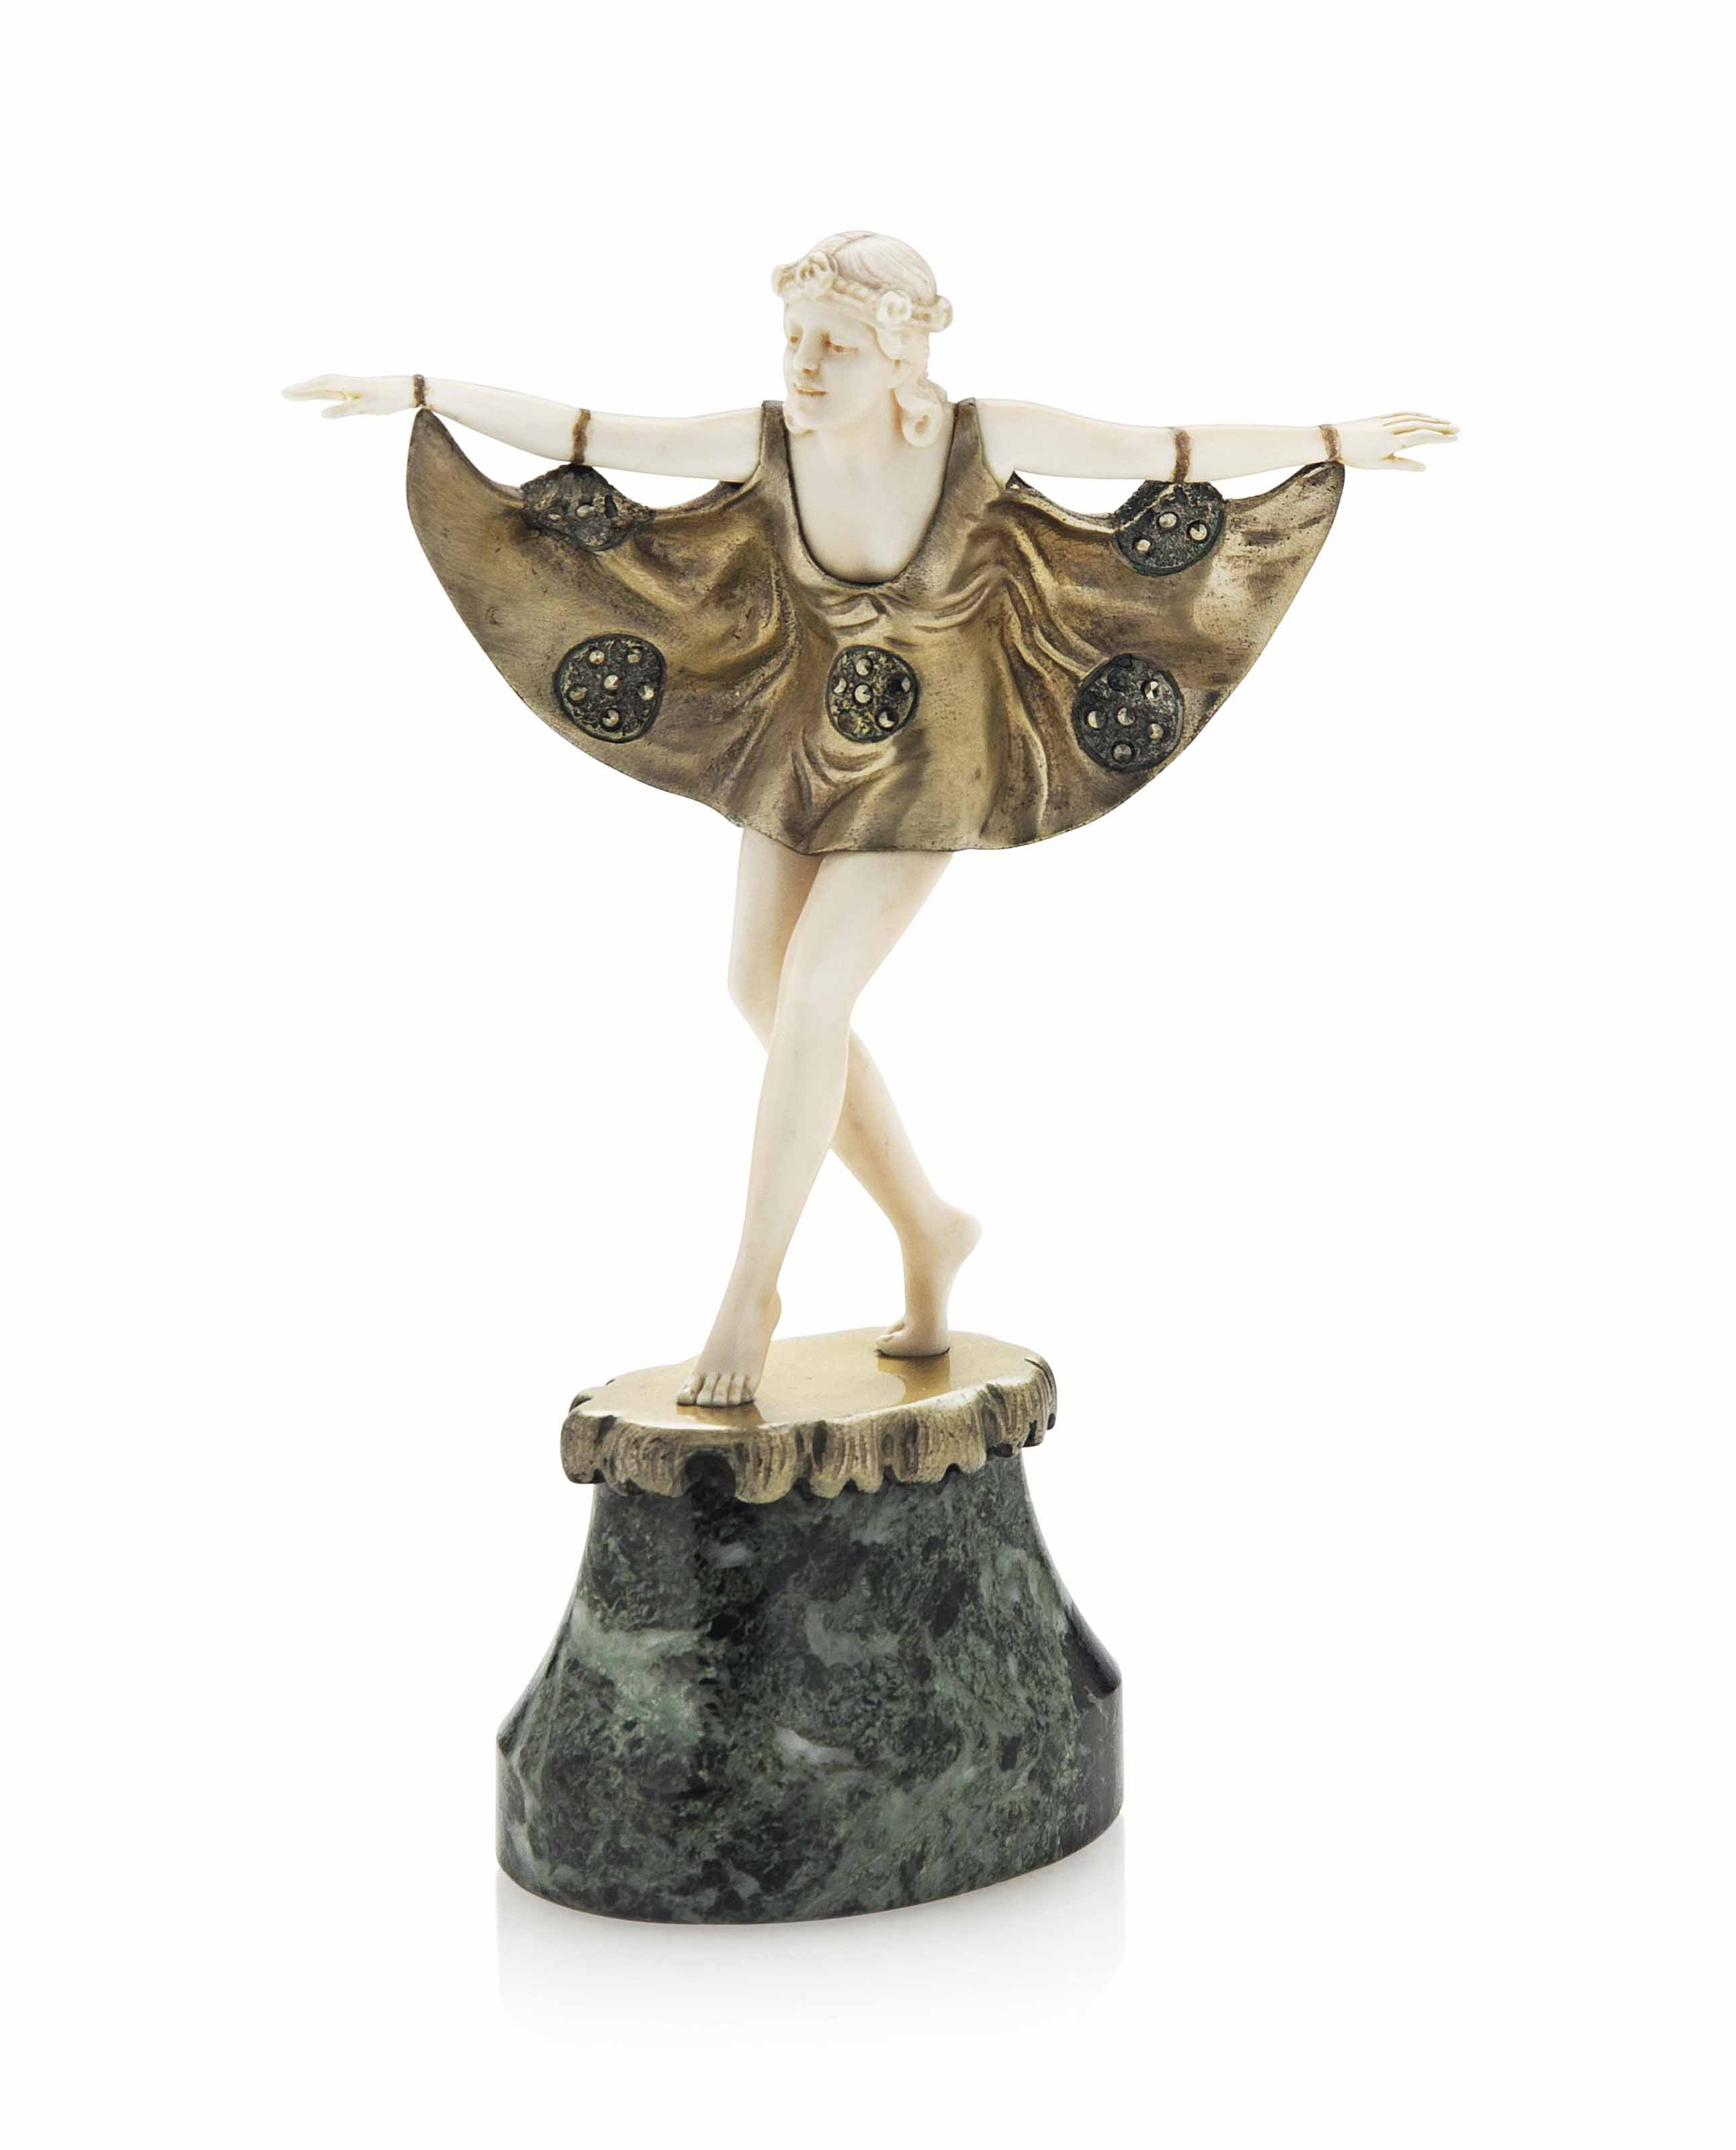 A  COLD-PAINTED BRONZE, IVORY AND MARCASITE FIGURE ATTRIBUTED TO PROFESSOR OTTO POERTZEL